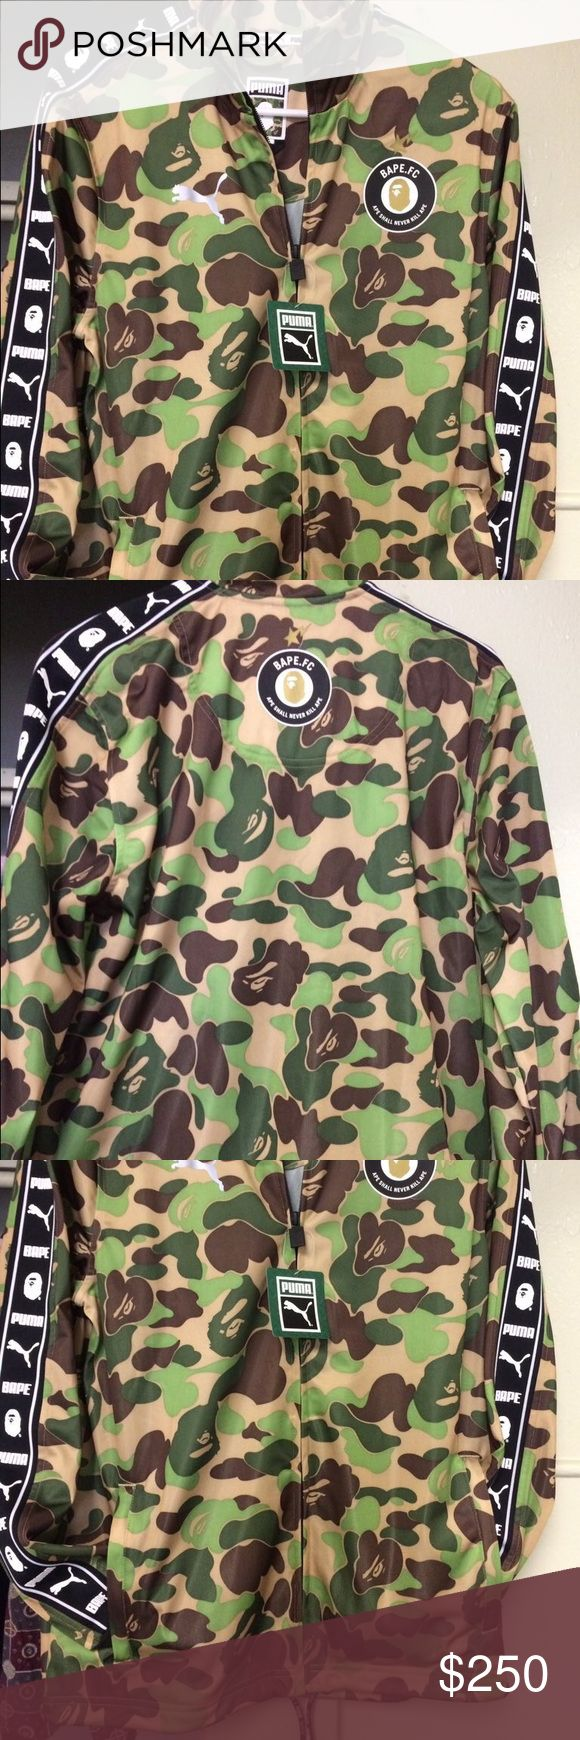 BAPE X PUMA Really dope jacket Bape Jackets & Coats